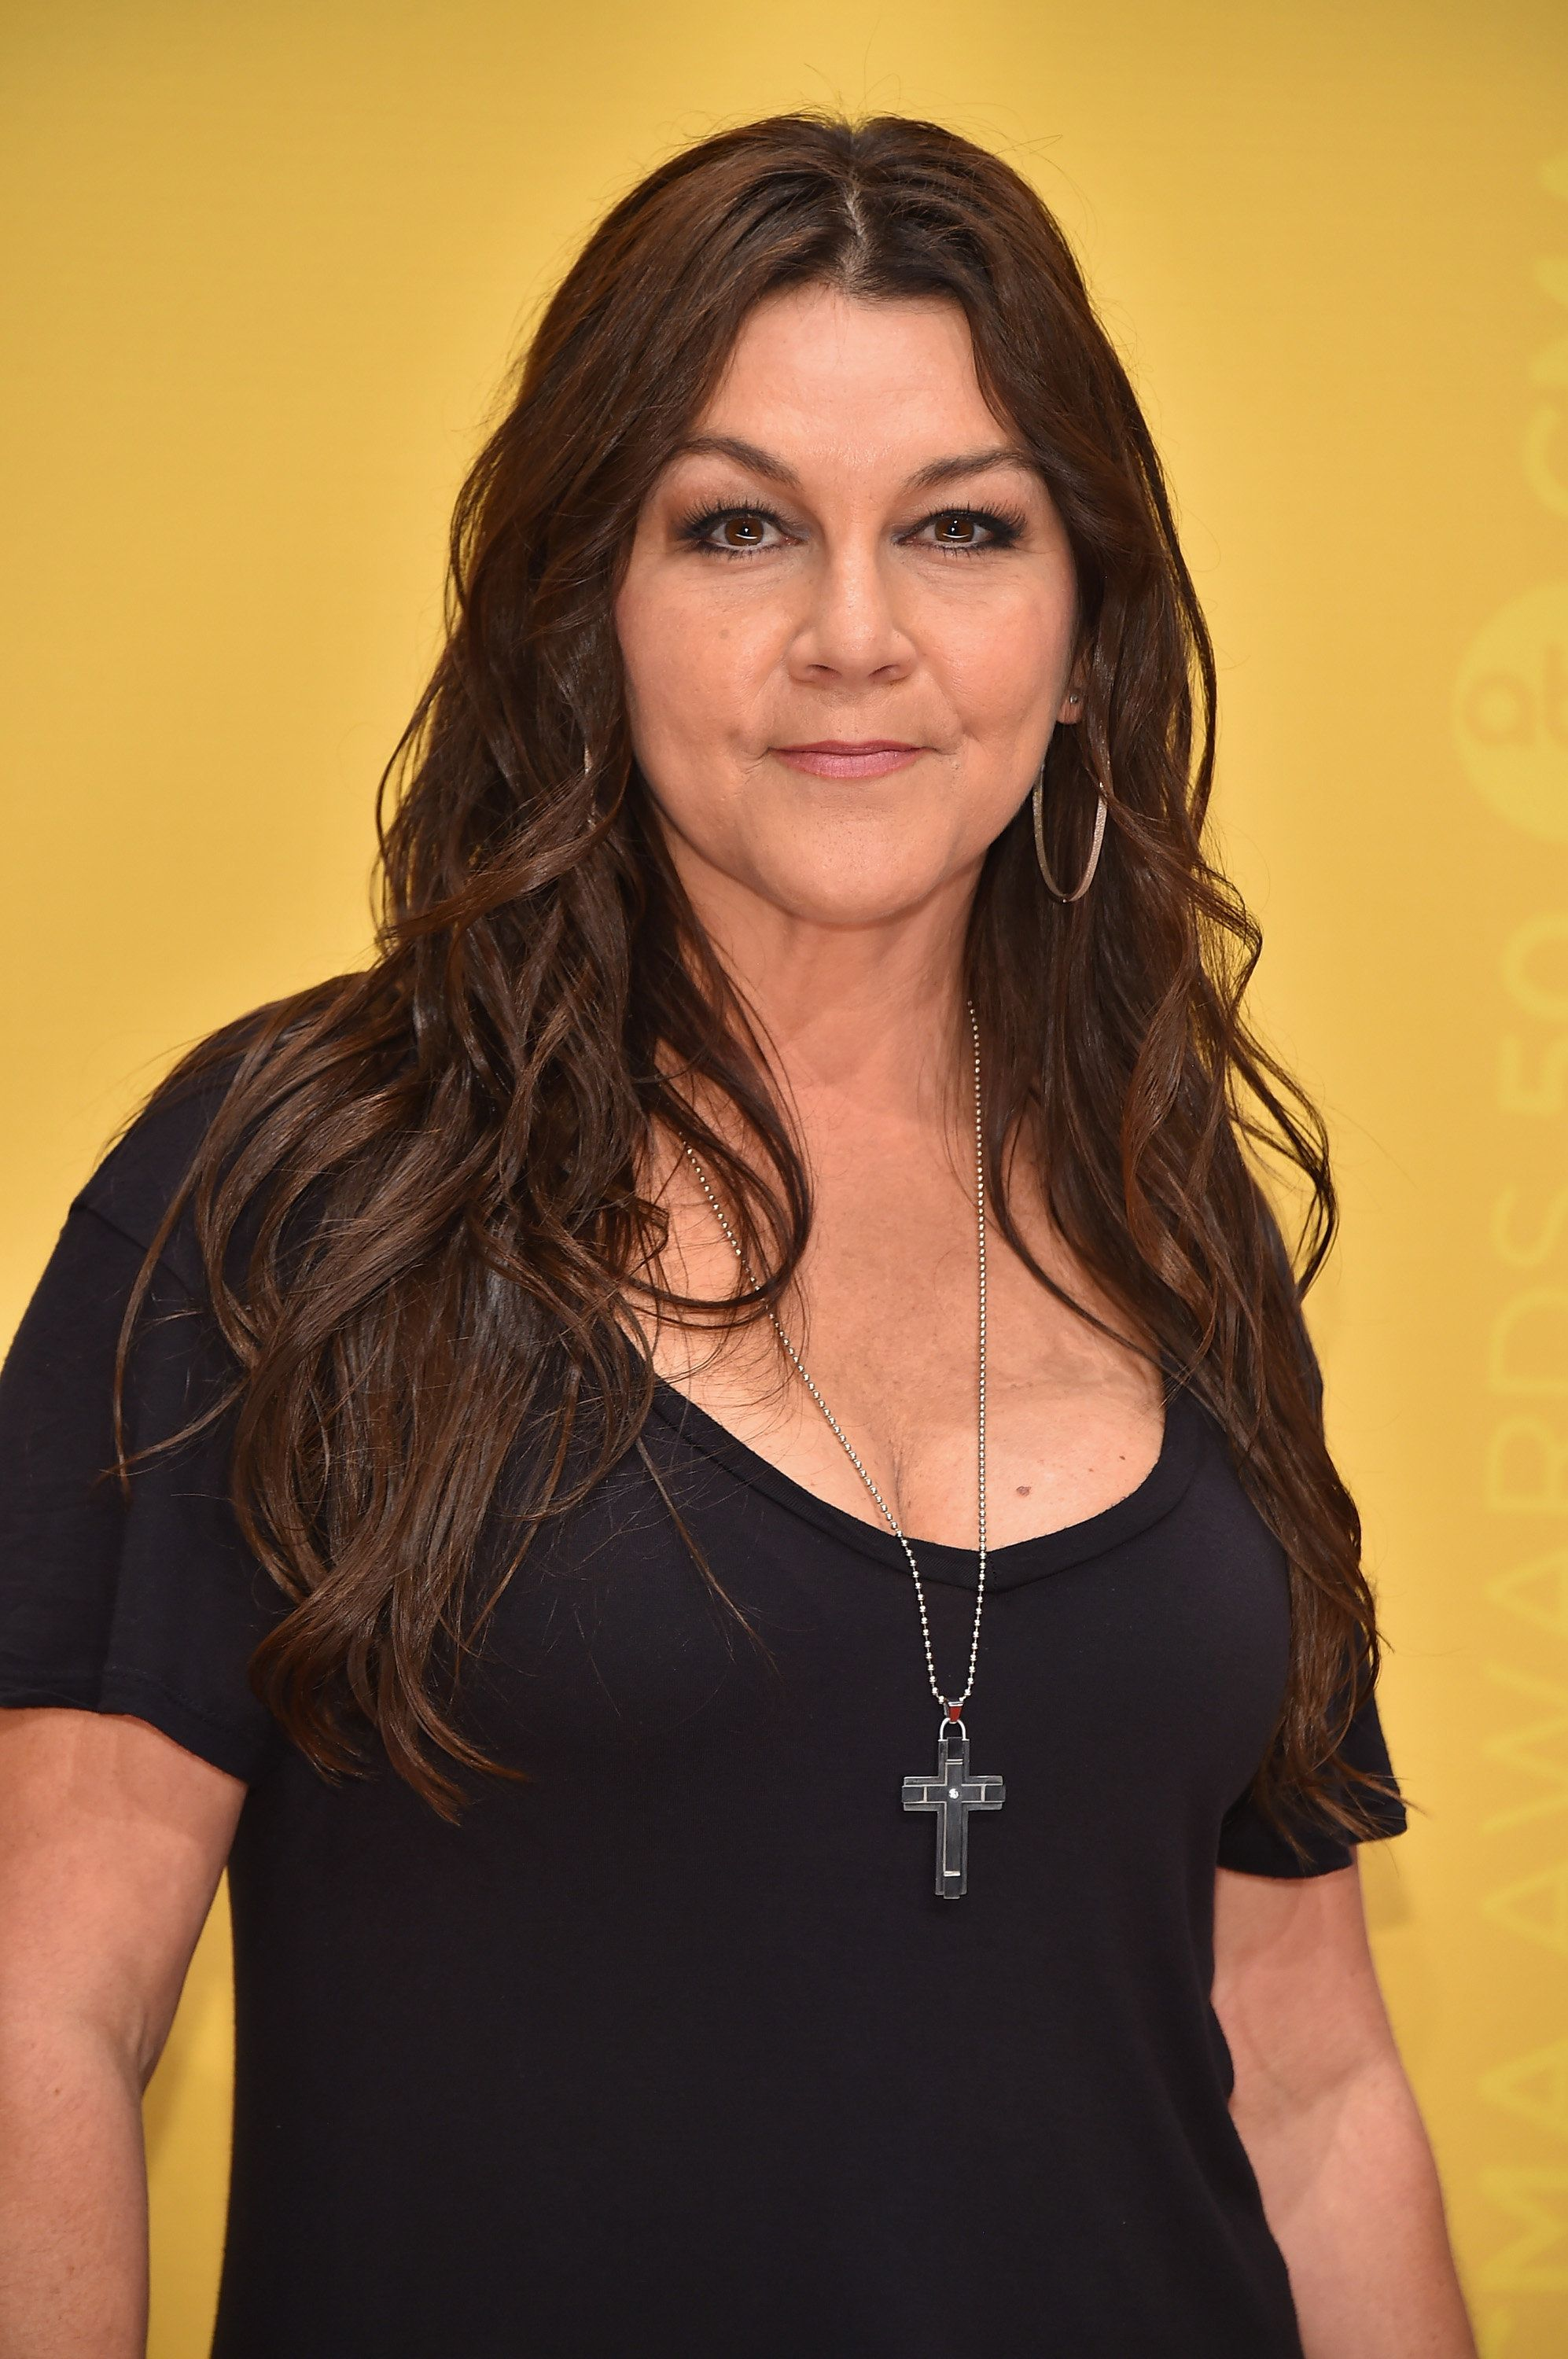 NASHVILLE, TN - NOVEMBER 02:  Musical artist Gretchen Wilson attends the 50th annual CMA Awards at the Bridgestone Arena on November 2, 2016 in Nashville, Tennessee.  (Photo by Michael Loccisano/Getty Images)